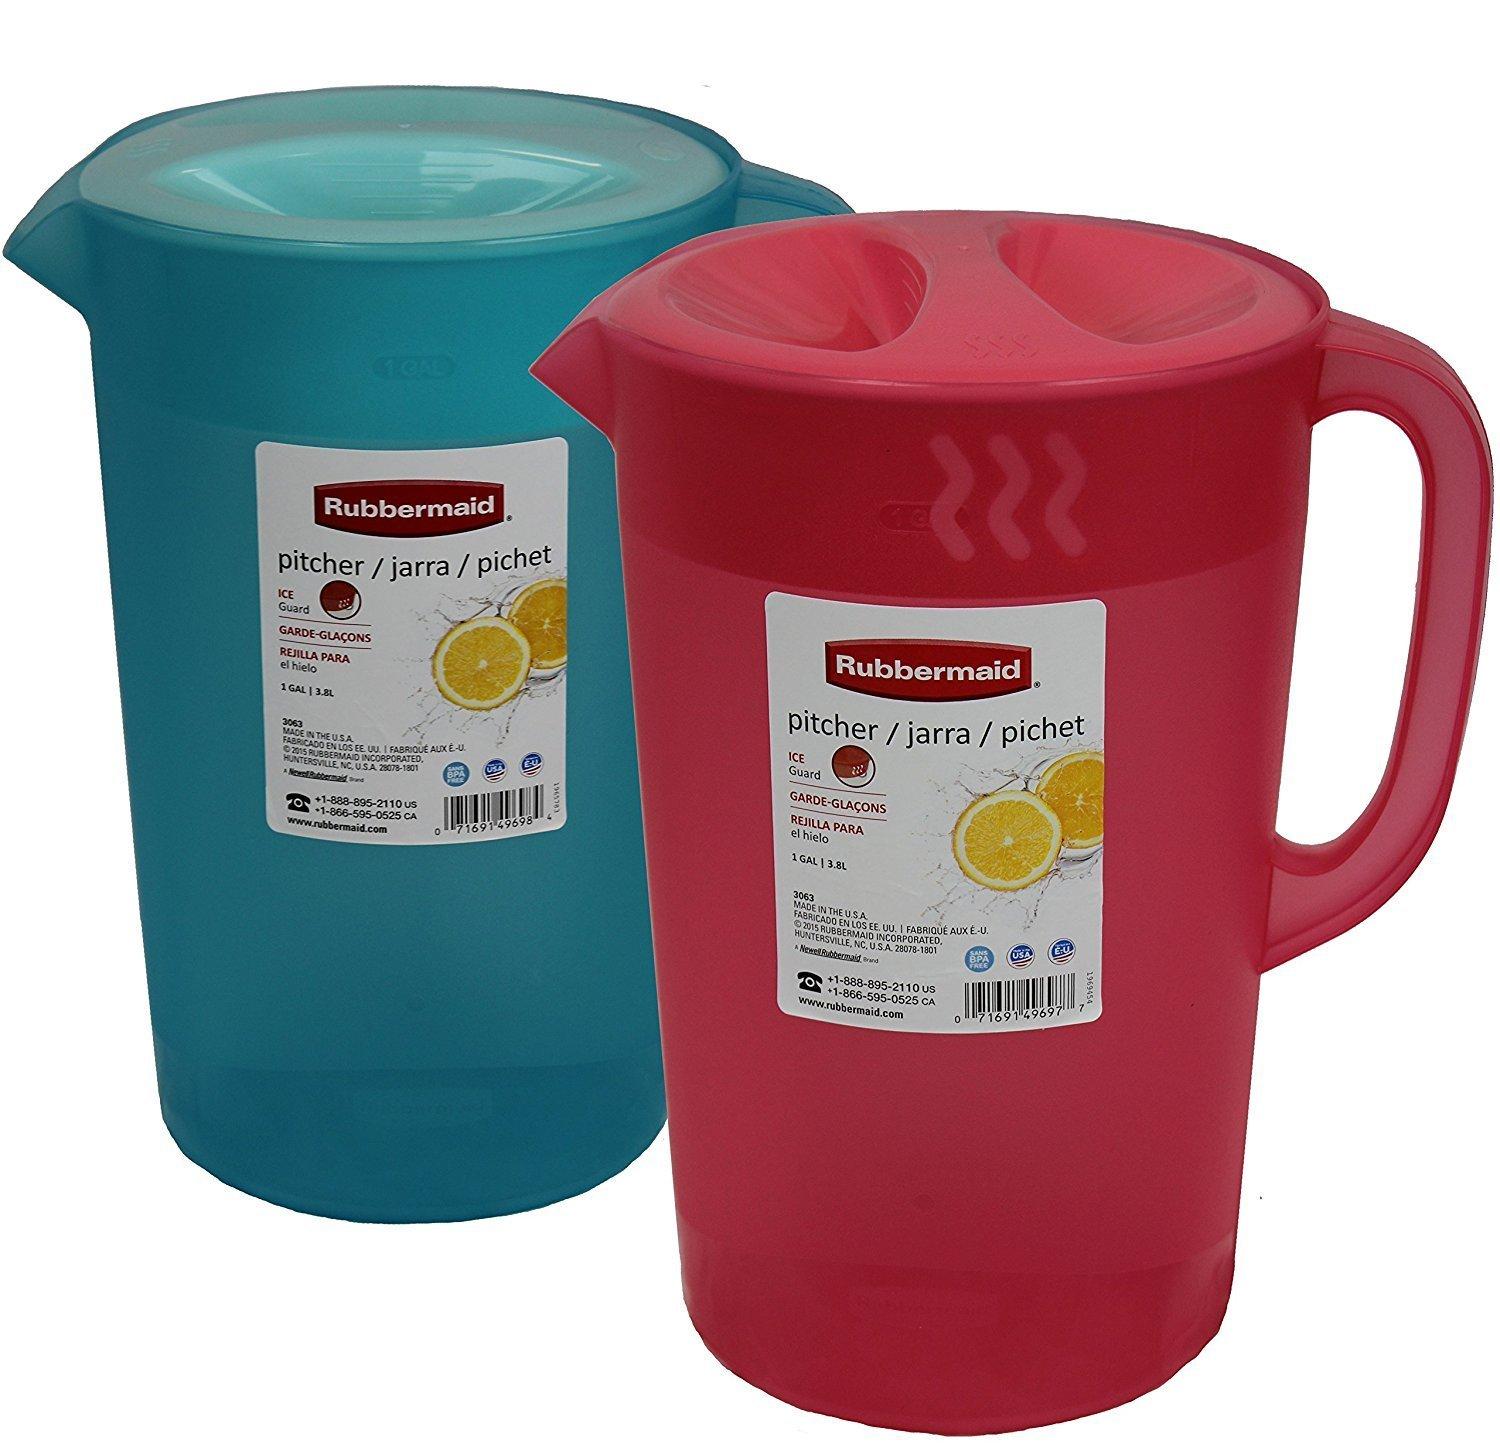 Rubermaid B01IDSBI9W Rubbermaid 2pk Classic Pitcher, Pack of 2 Colors, 1 Gallon, Red/Blue by Rubbermaid (Image #1)